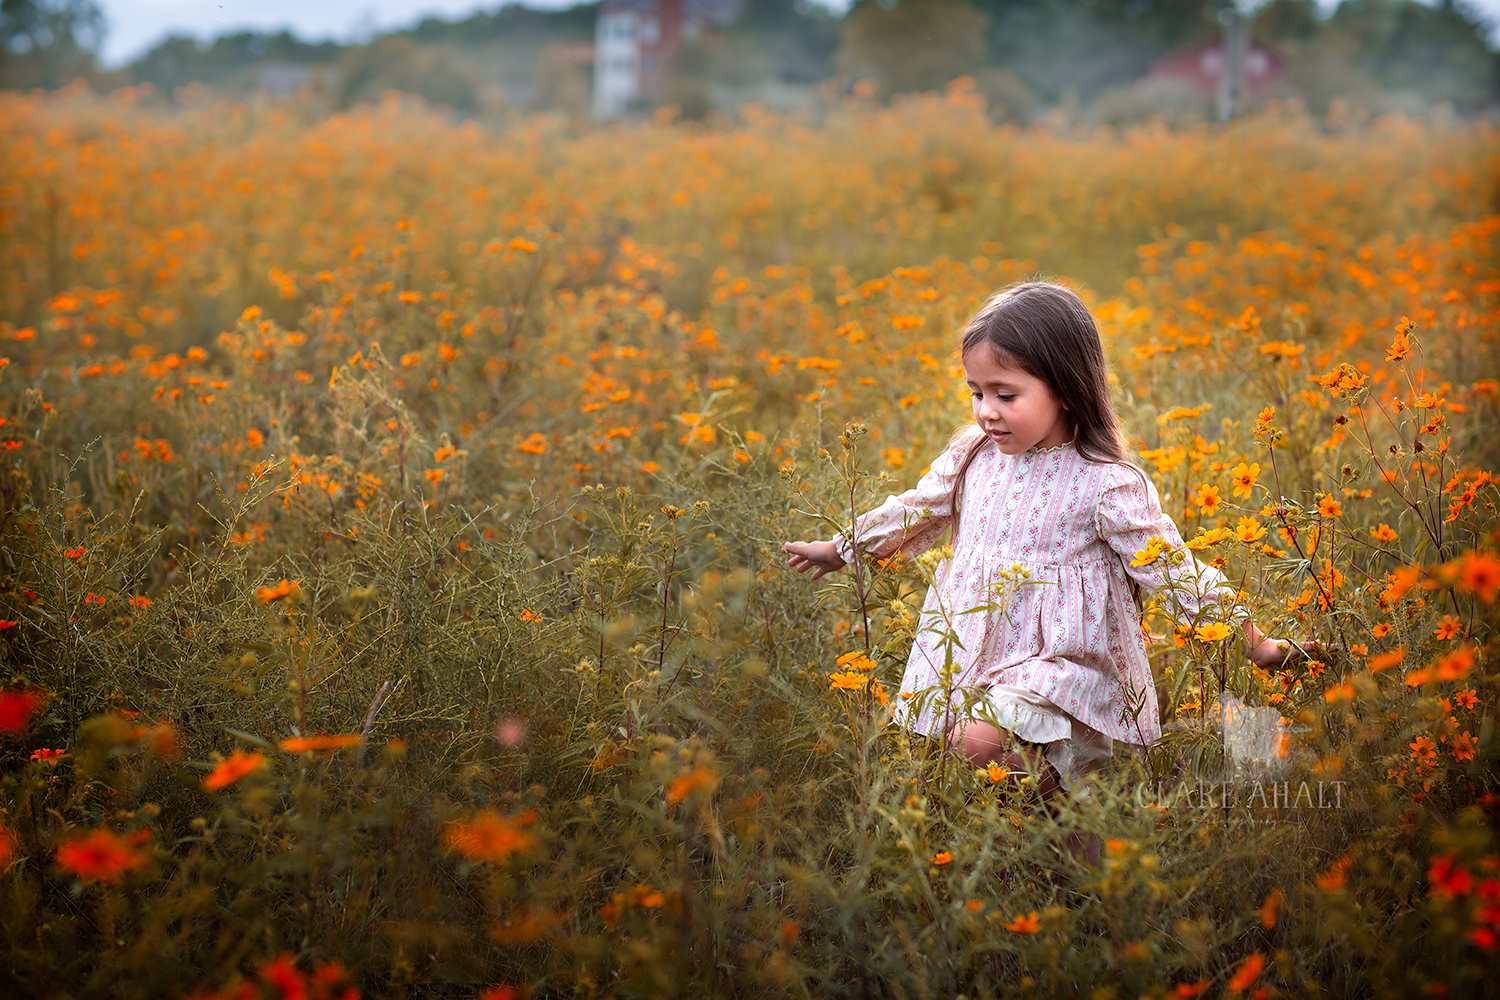 Portrait of a little girl walking through a field of yellow wildflowers.  Photographed by Clare Ahalt Photography, a fine art portrait photographer located in Maryland, serving Maryland, Northern Virginia, Washington DC and Greater Baltimore.  Photographed at a workshop held by Elena Shumilova Photography, photographed on location in Northern Virginia